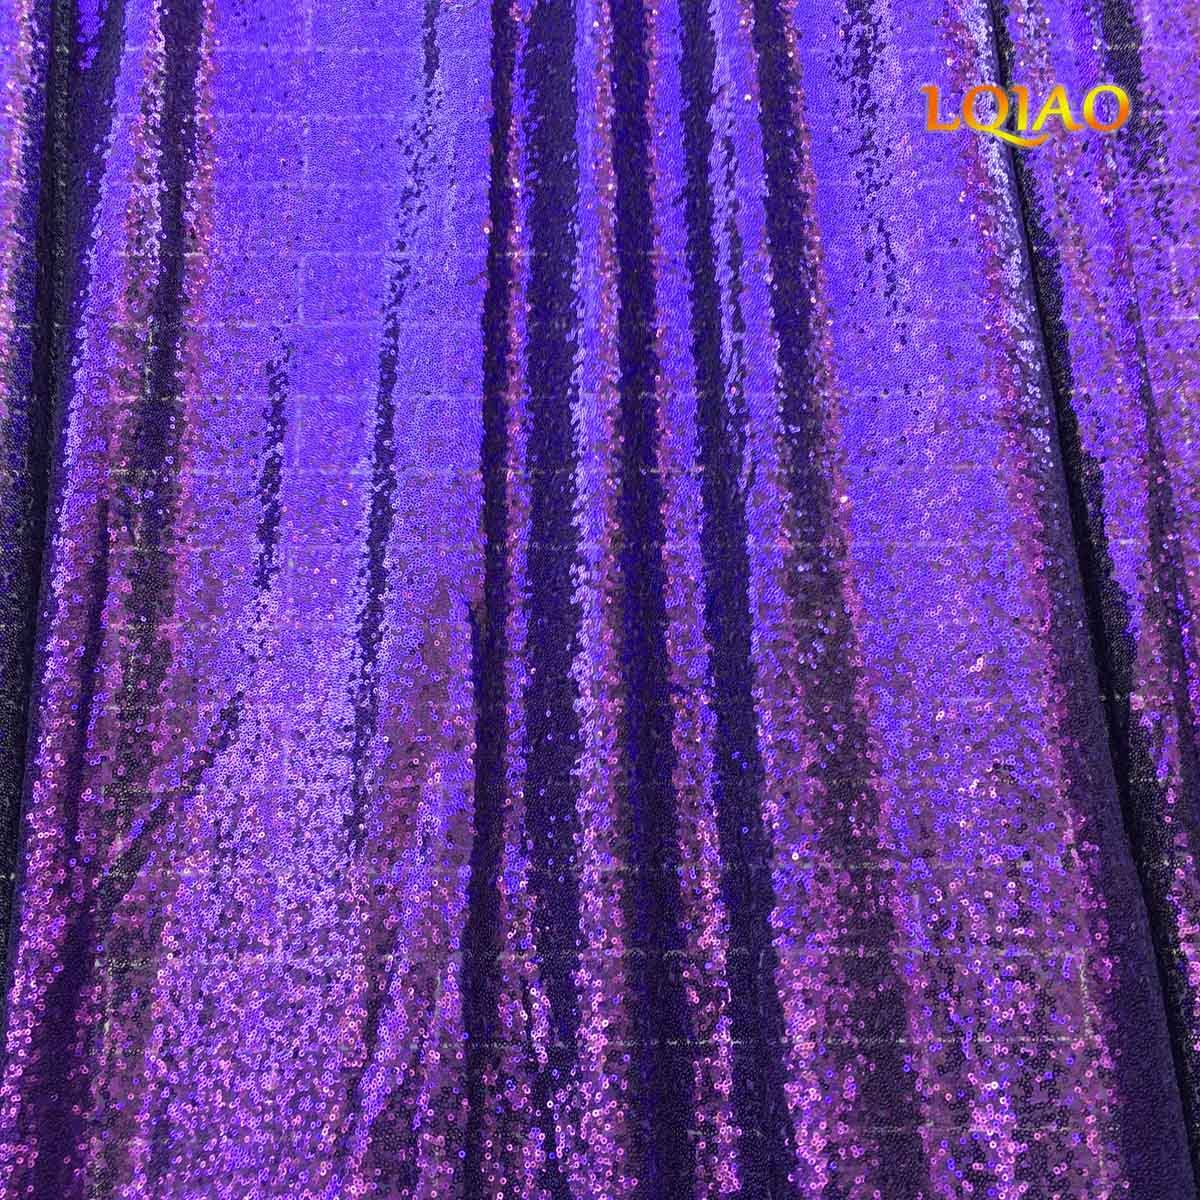 LQIAO Wedding Christmas Backdrop Glitter Purple 20FTx10FT Sequin Backdrop Window Curtain Photo Booth Photography Party Decoration by LQIAO